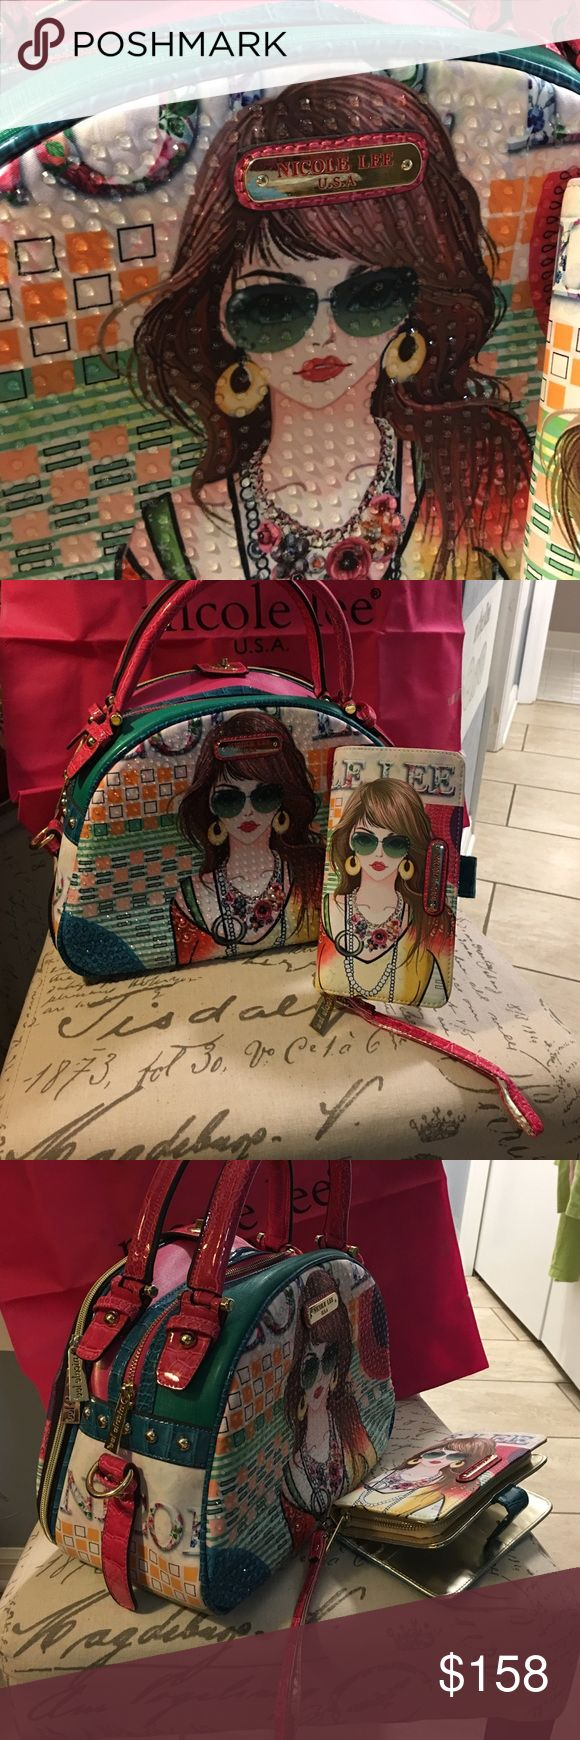 Nicole Lee bag 3pc set brand New Never Used. Nicole Lee purse and wallet with dust bag authentic never been used brand-new no tags multicolors I only have one mainly hot pink turquoise. The front  front in detail Nicole Lee Bags Clutches & Wristlets